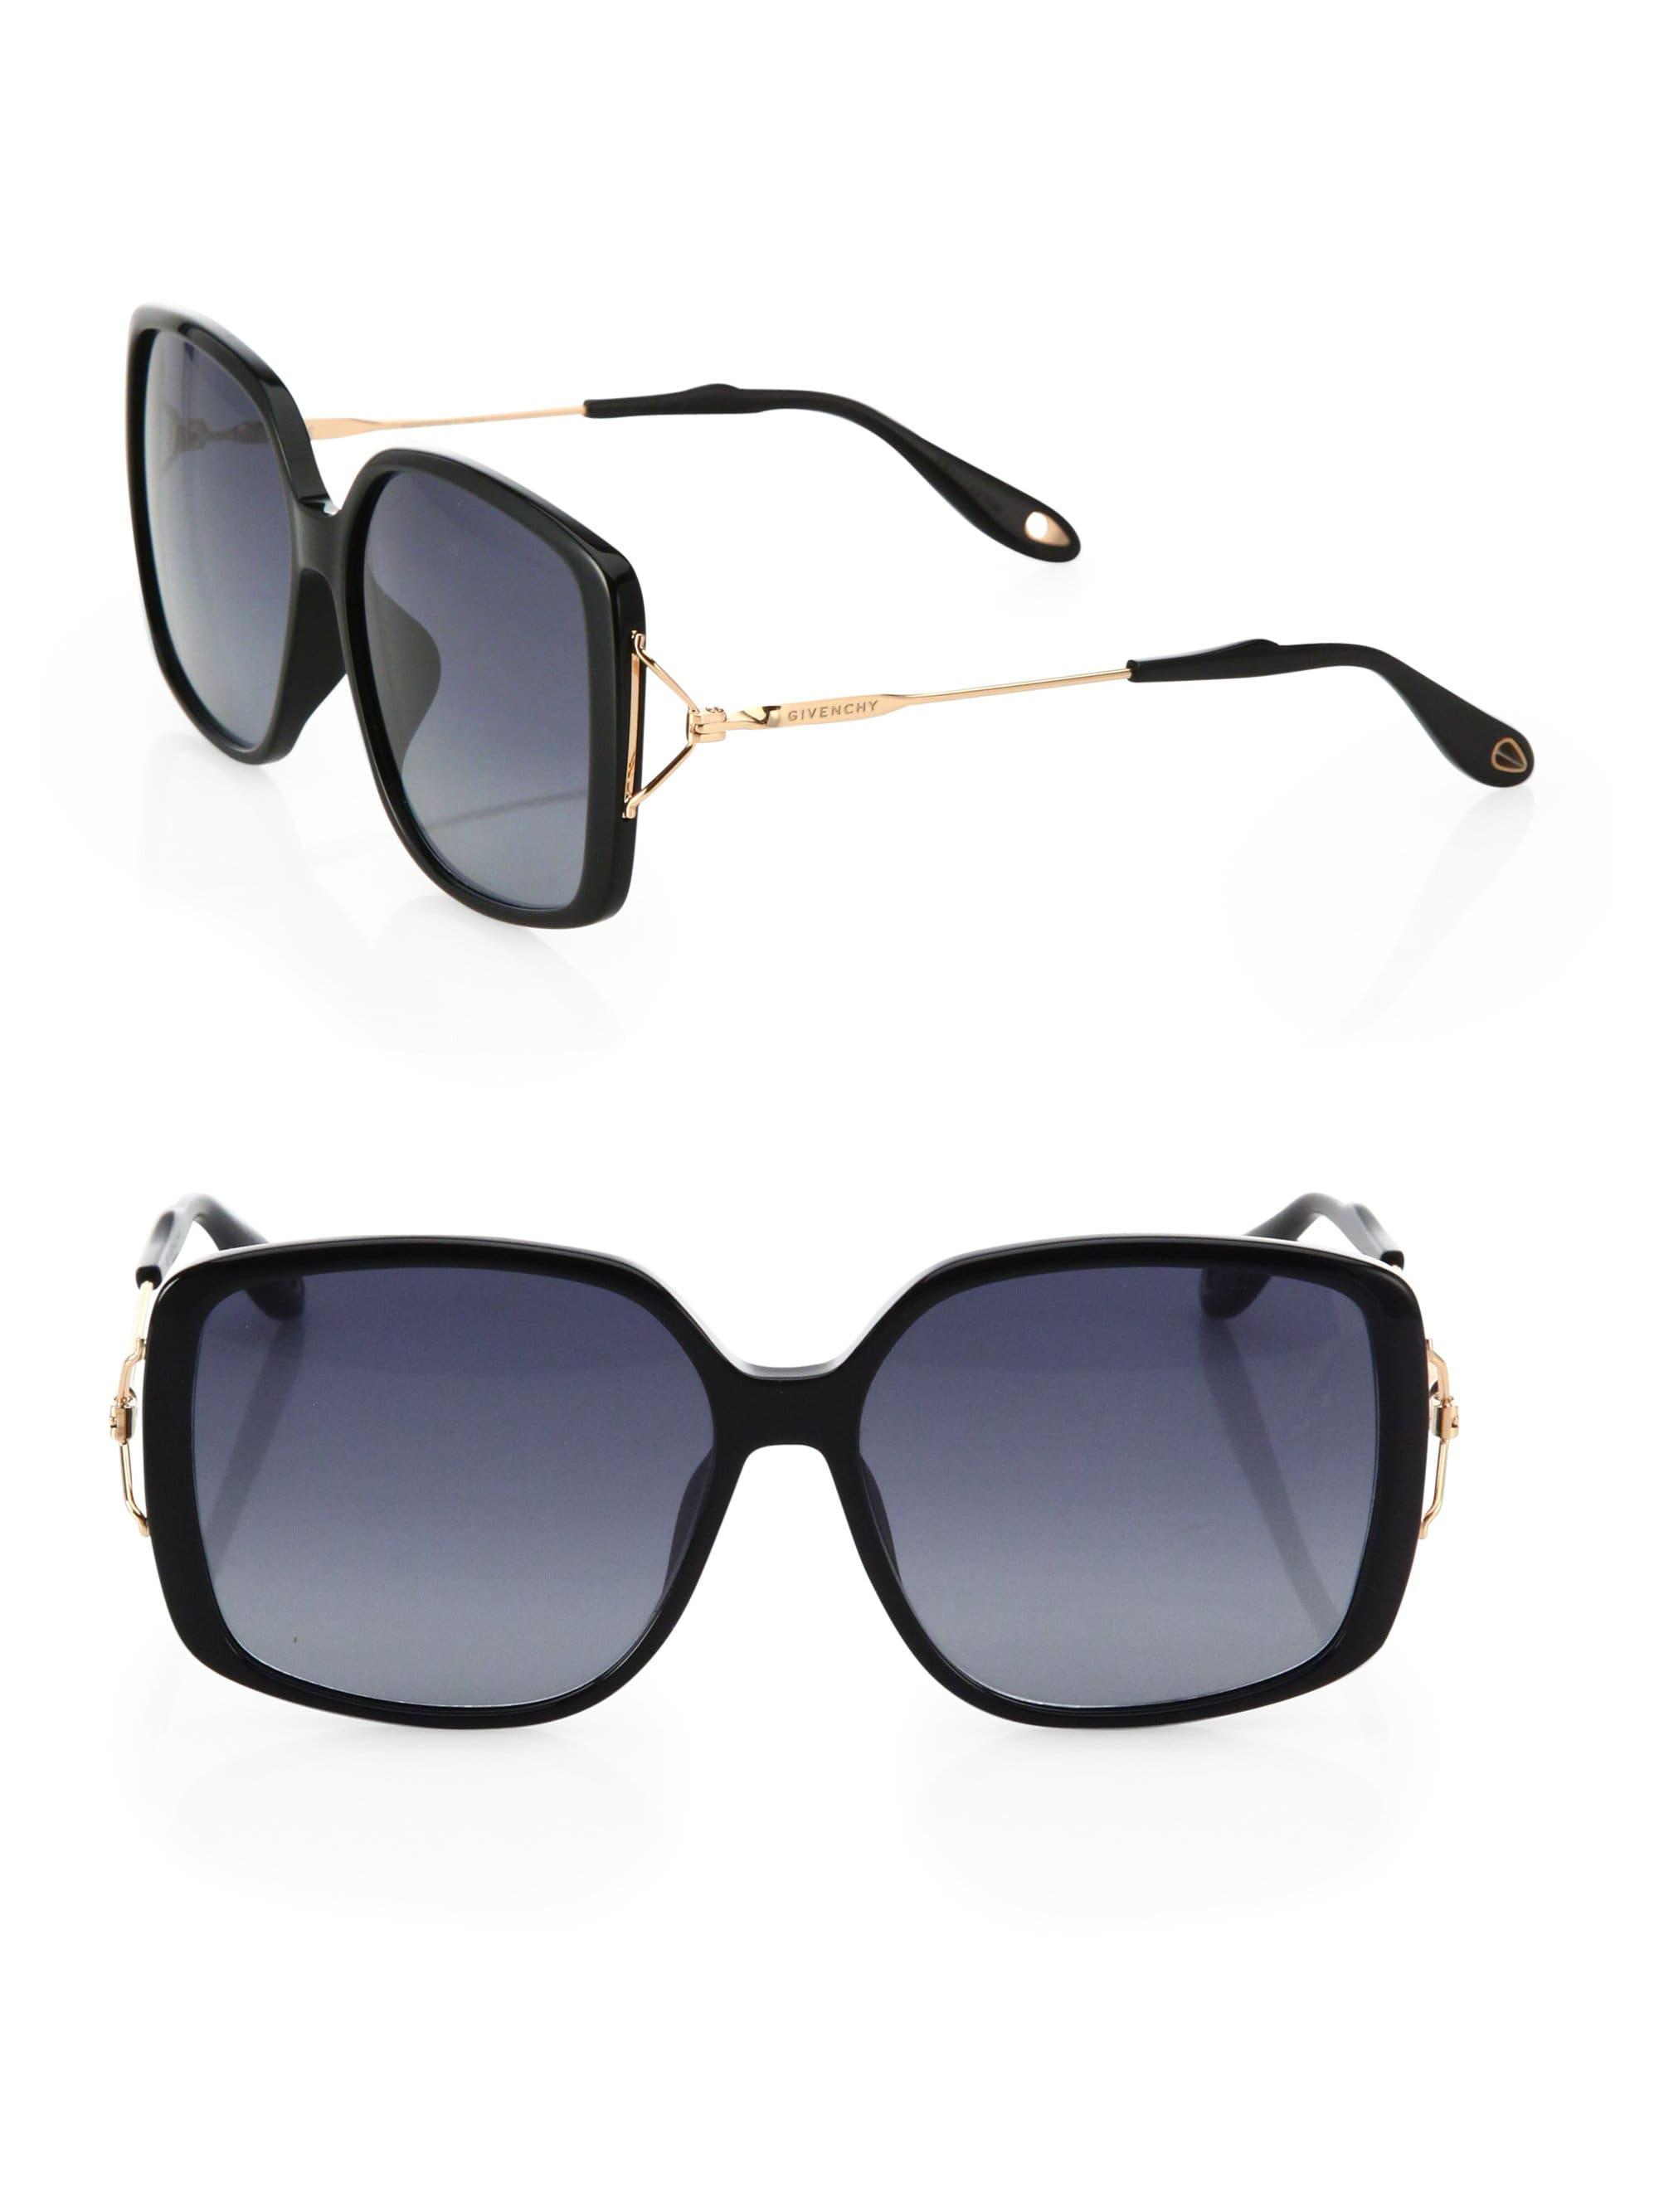 98227a8794f9 Lyst - Givenchy Women's 58mm Oversized Square Sunglasses - Black ...